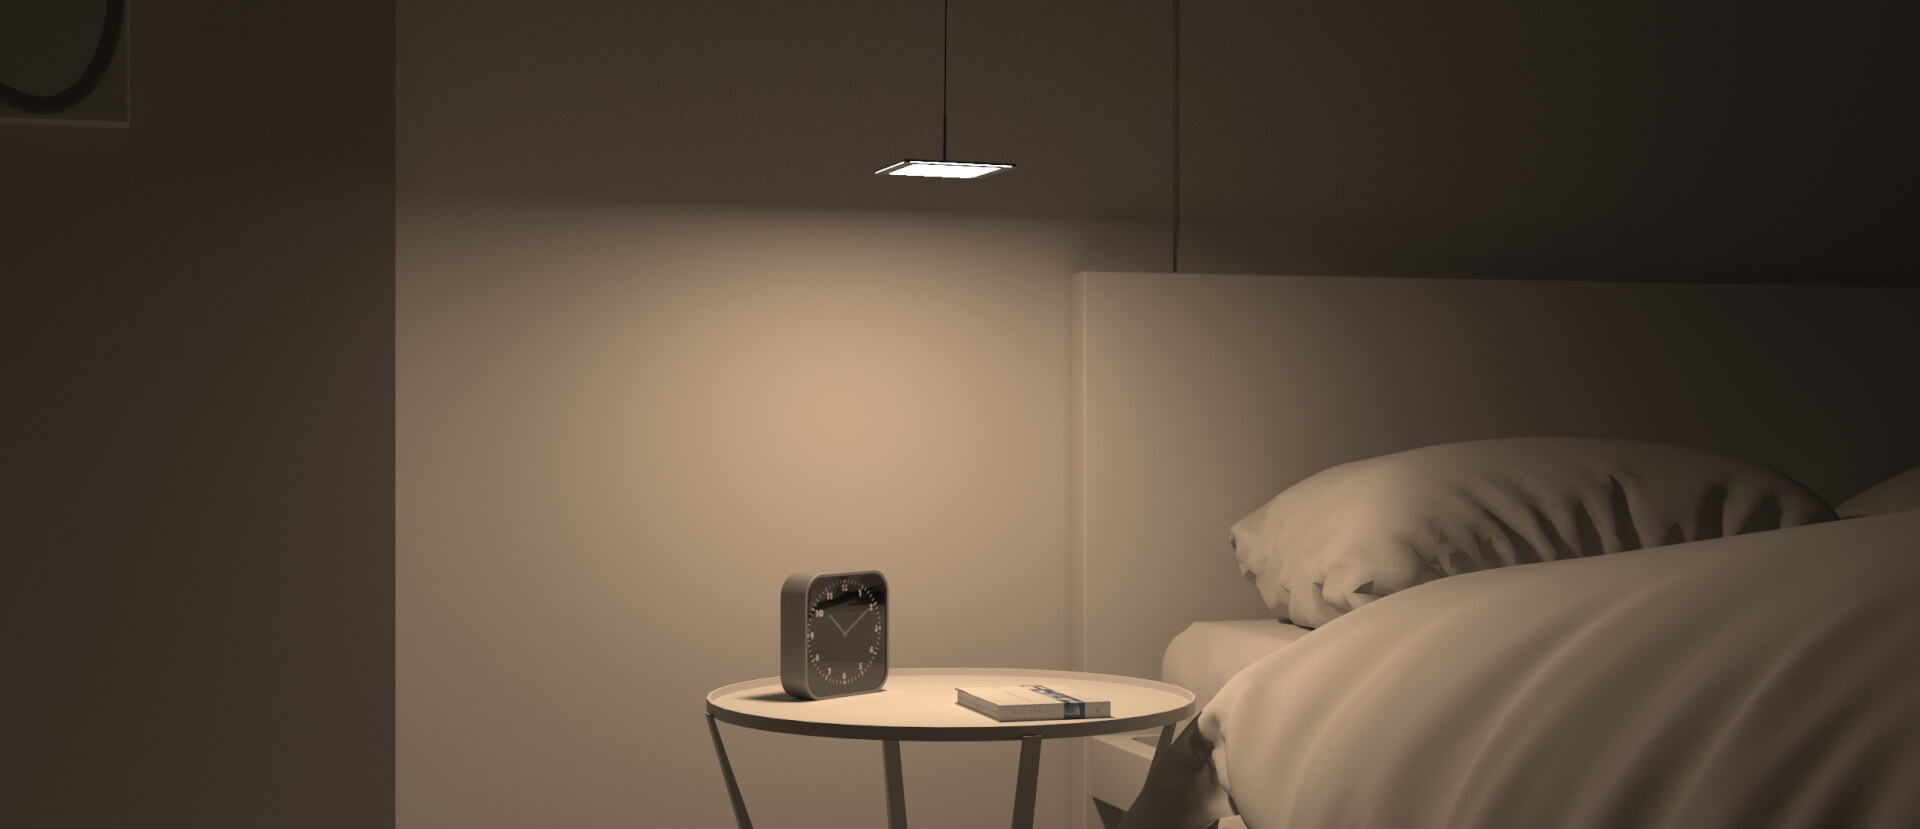 OLED fixture Zhen from Birot Lighting in bedroom